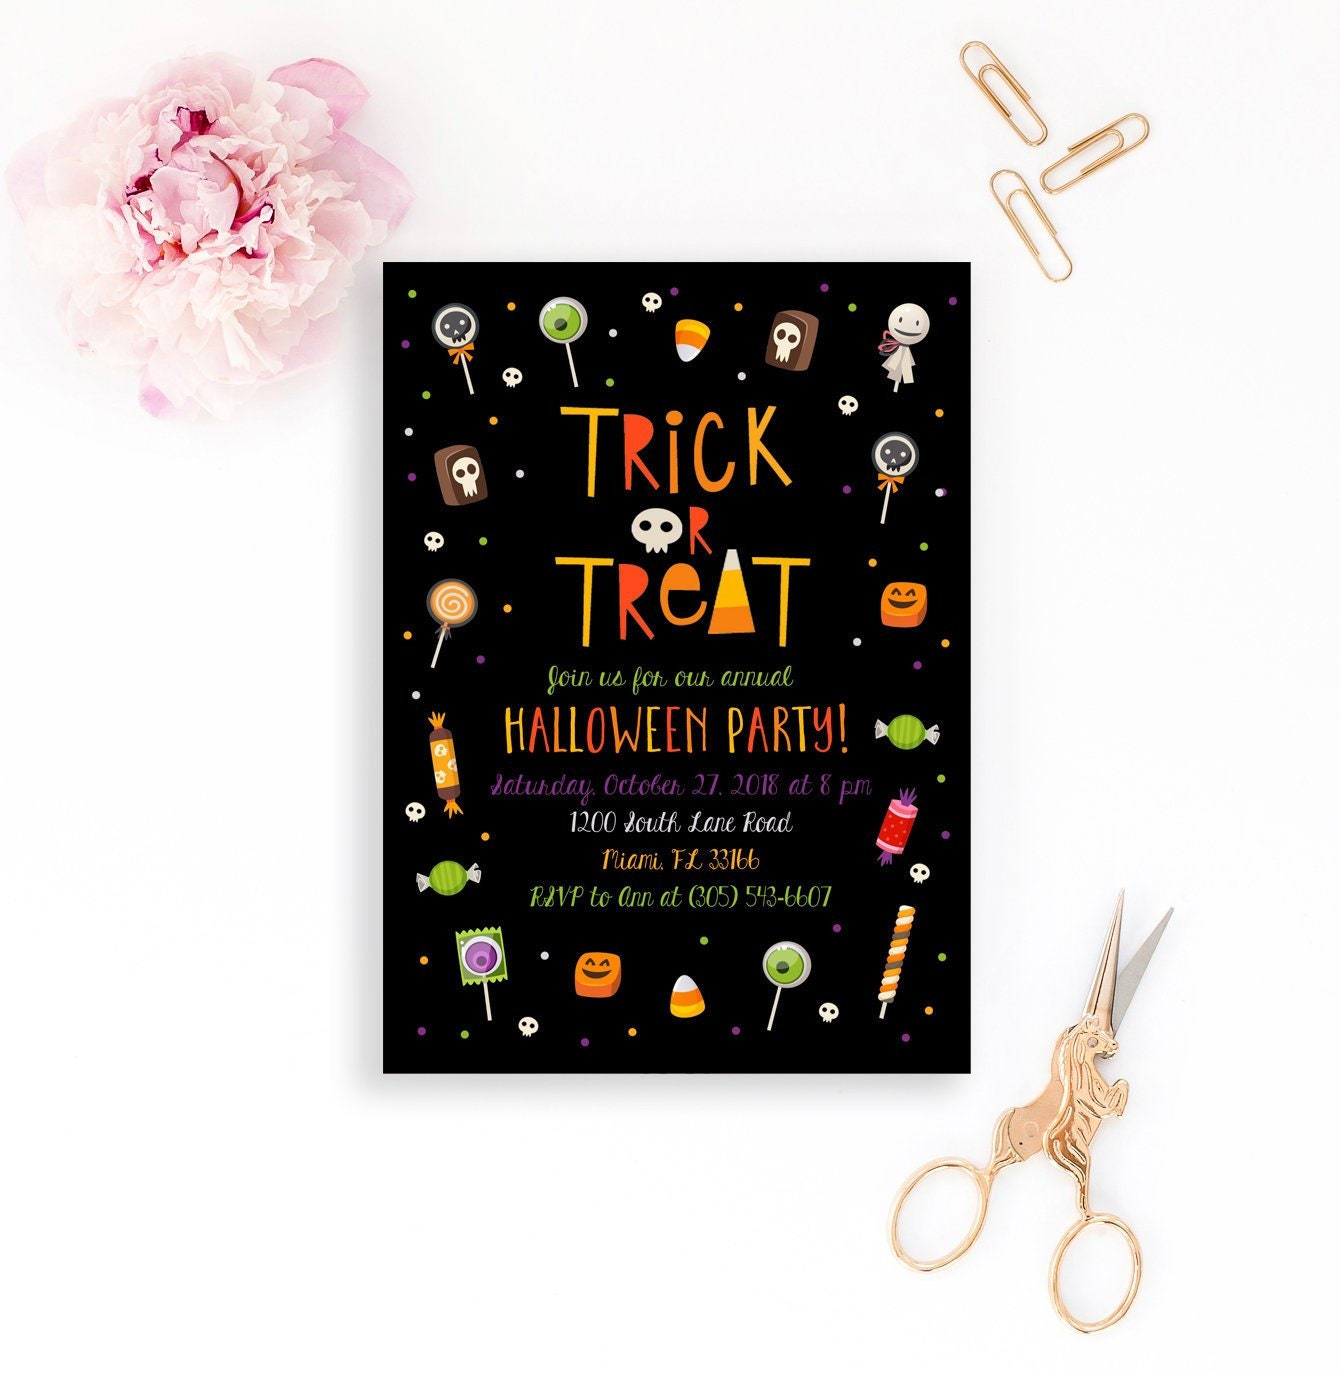 kids halloween party invitation, trick or treat halloween invitation